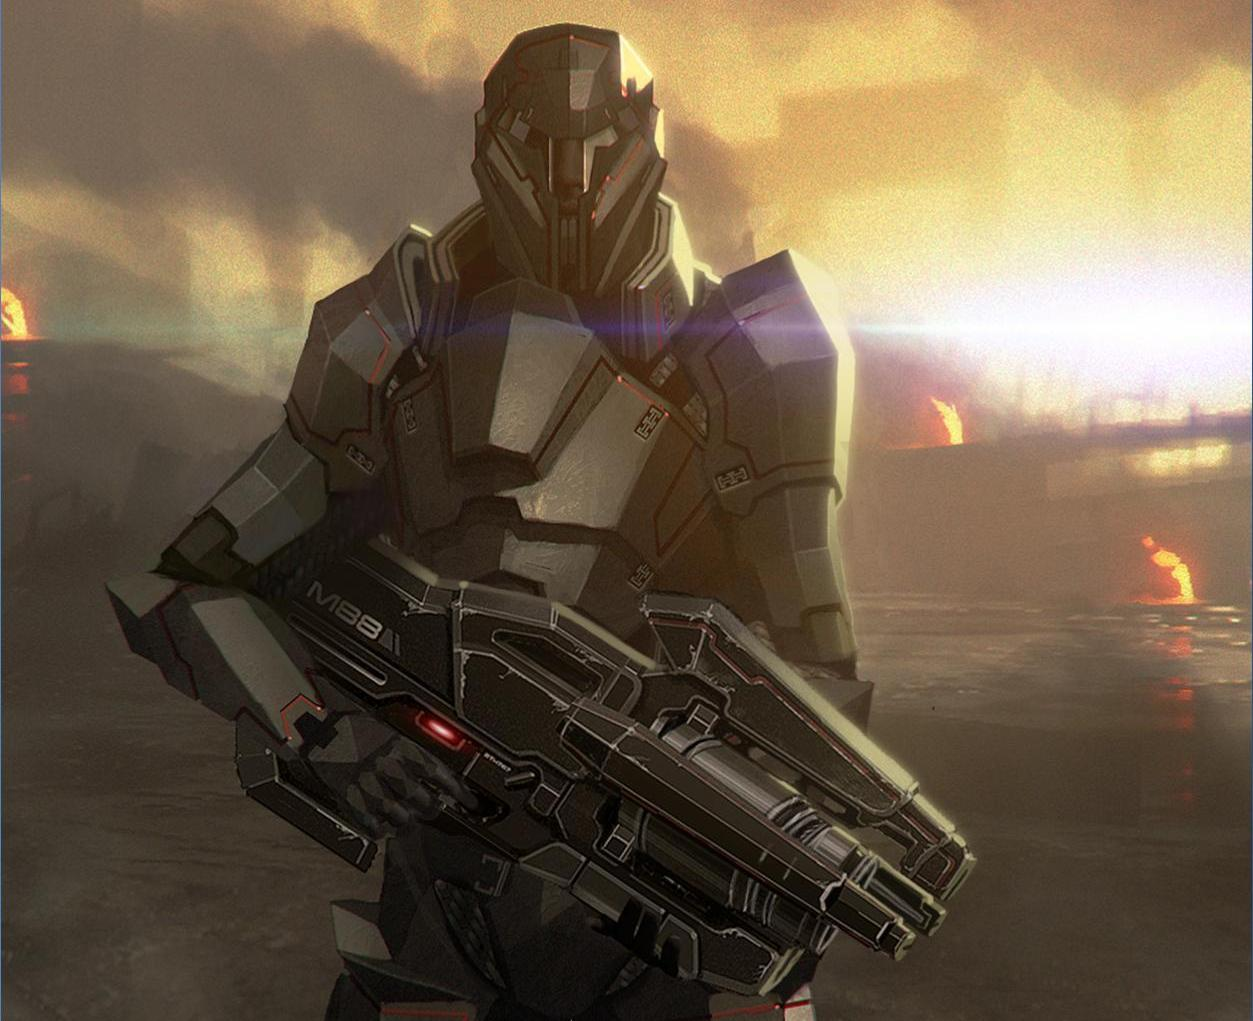 Best Ps Vita Games >> Free Mass Effect 2 Weapon and Armor For Early Purchase on PS3